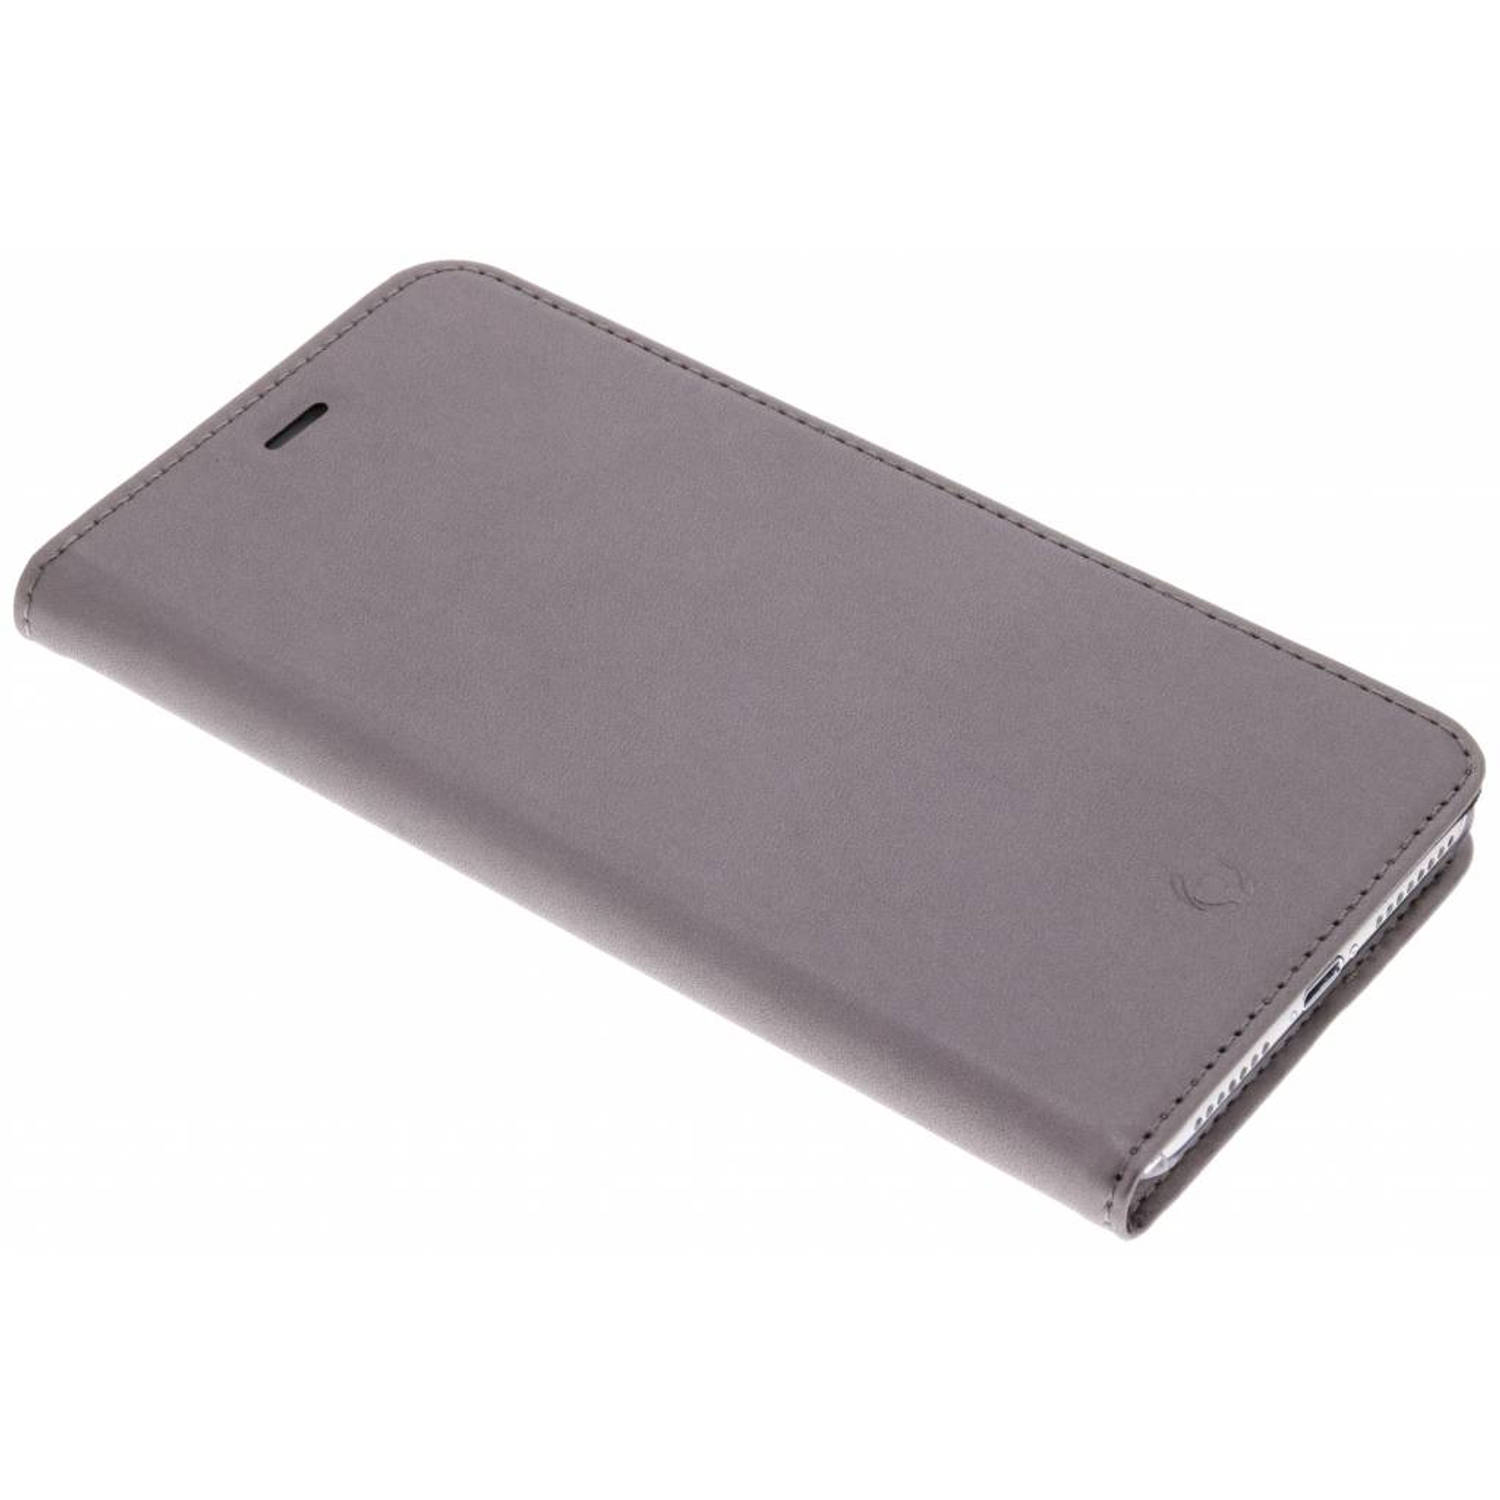 Zilveren Air Case voor de iPhone 8 Plus / 7 Plus / 6(s) Plus